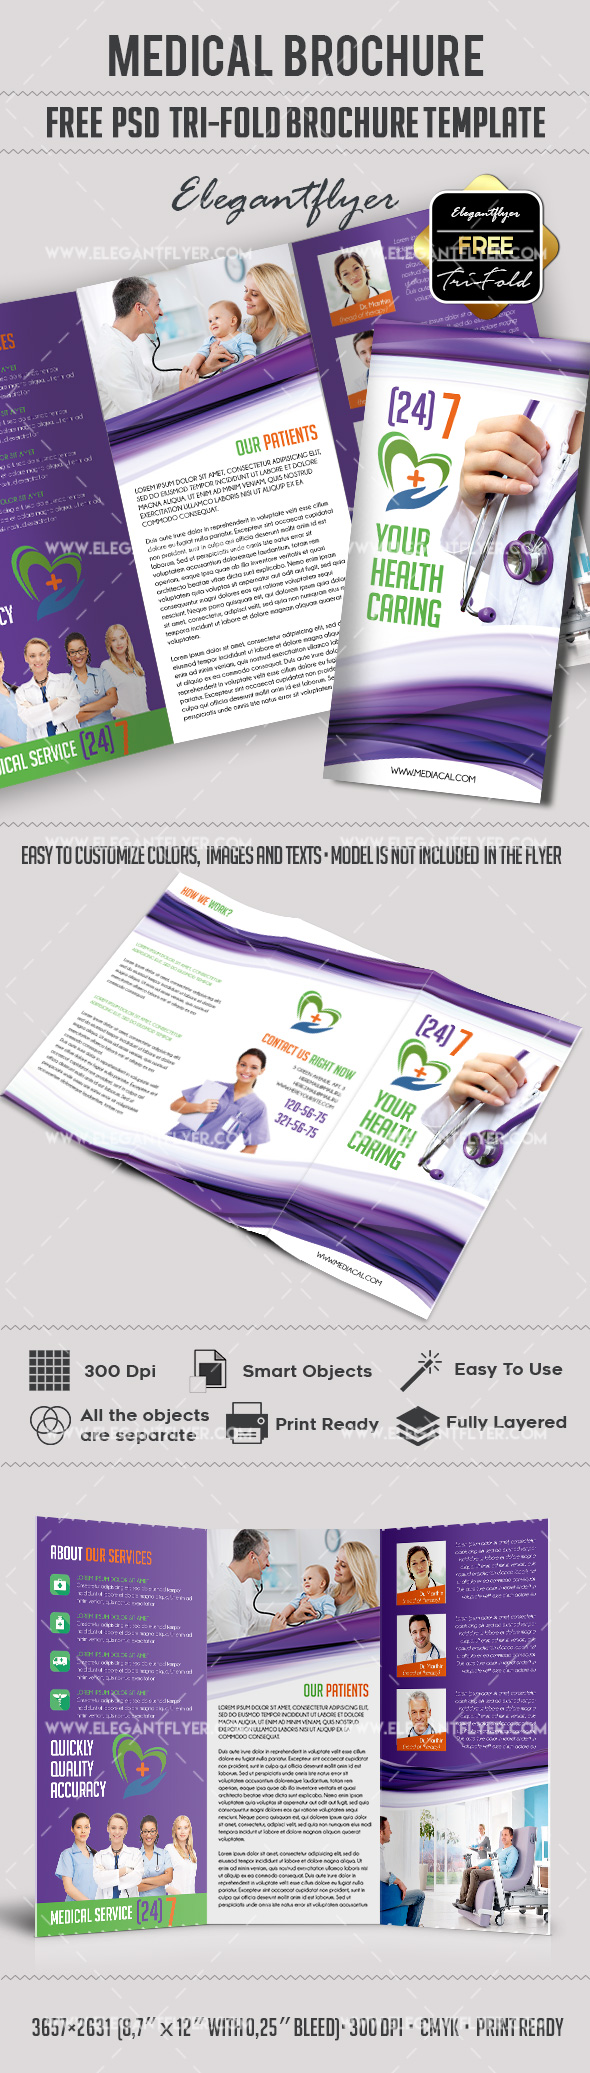 free three fold brochure template - medical free tri fold psd brochure template by